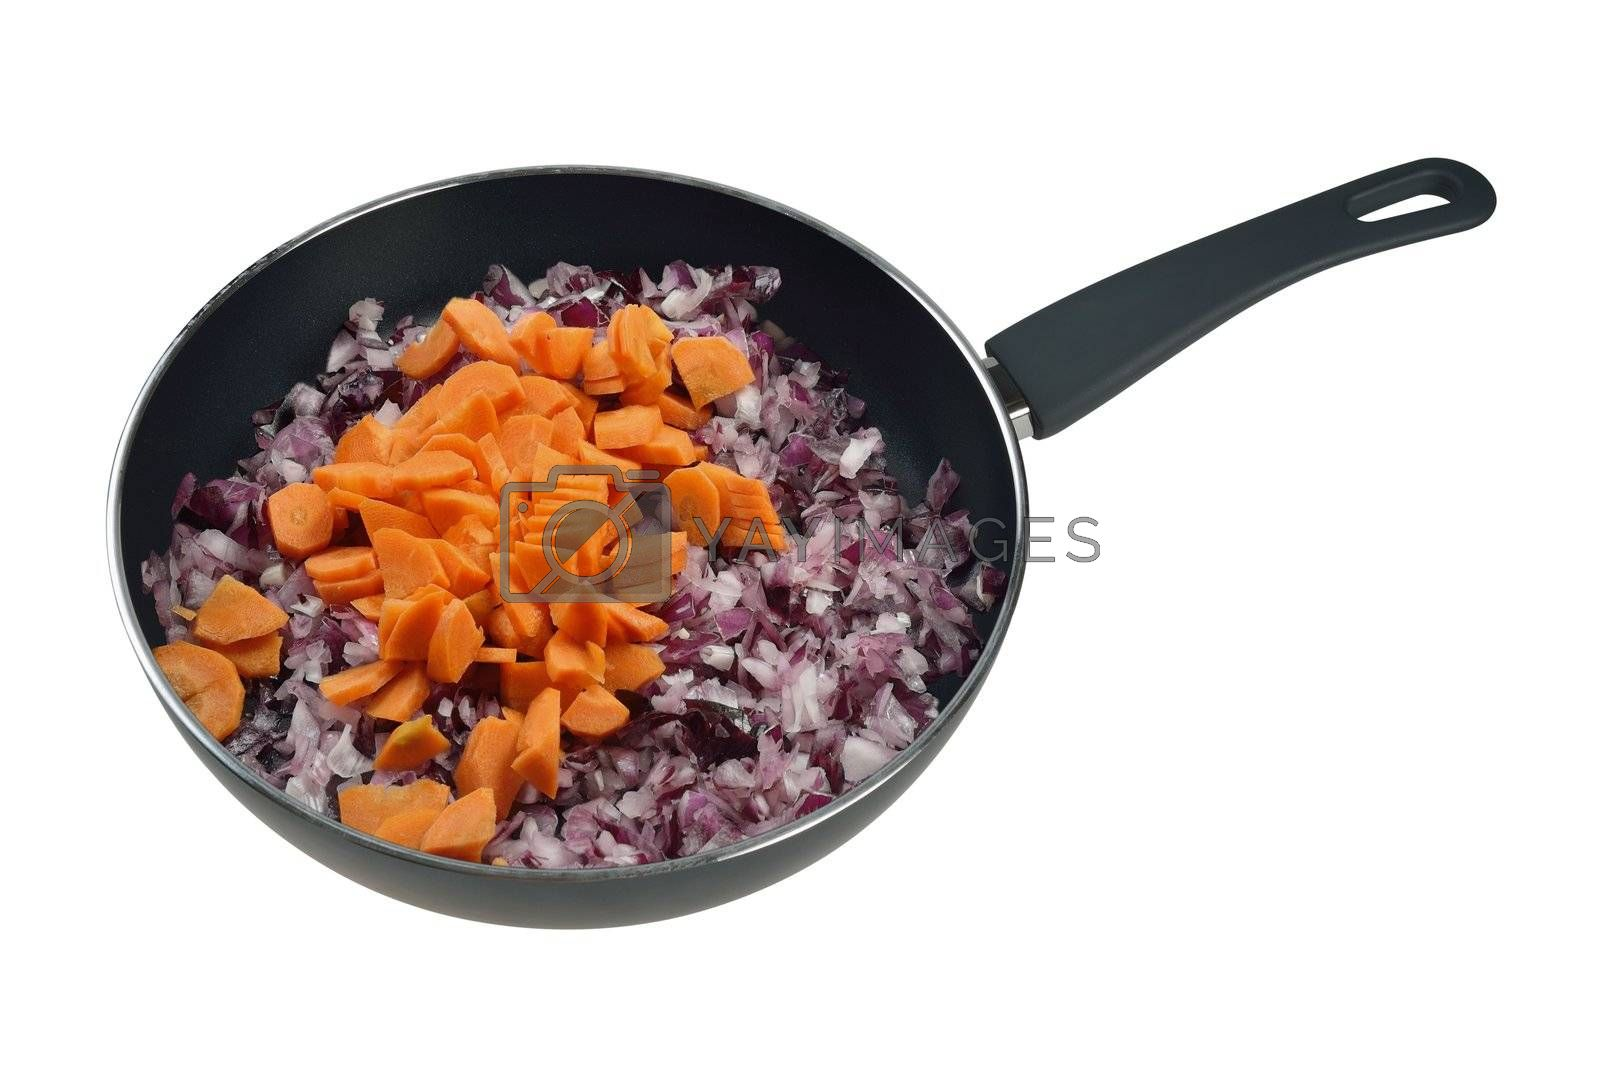 Onions and carrots in a frying pan. Isolated on white.